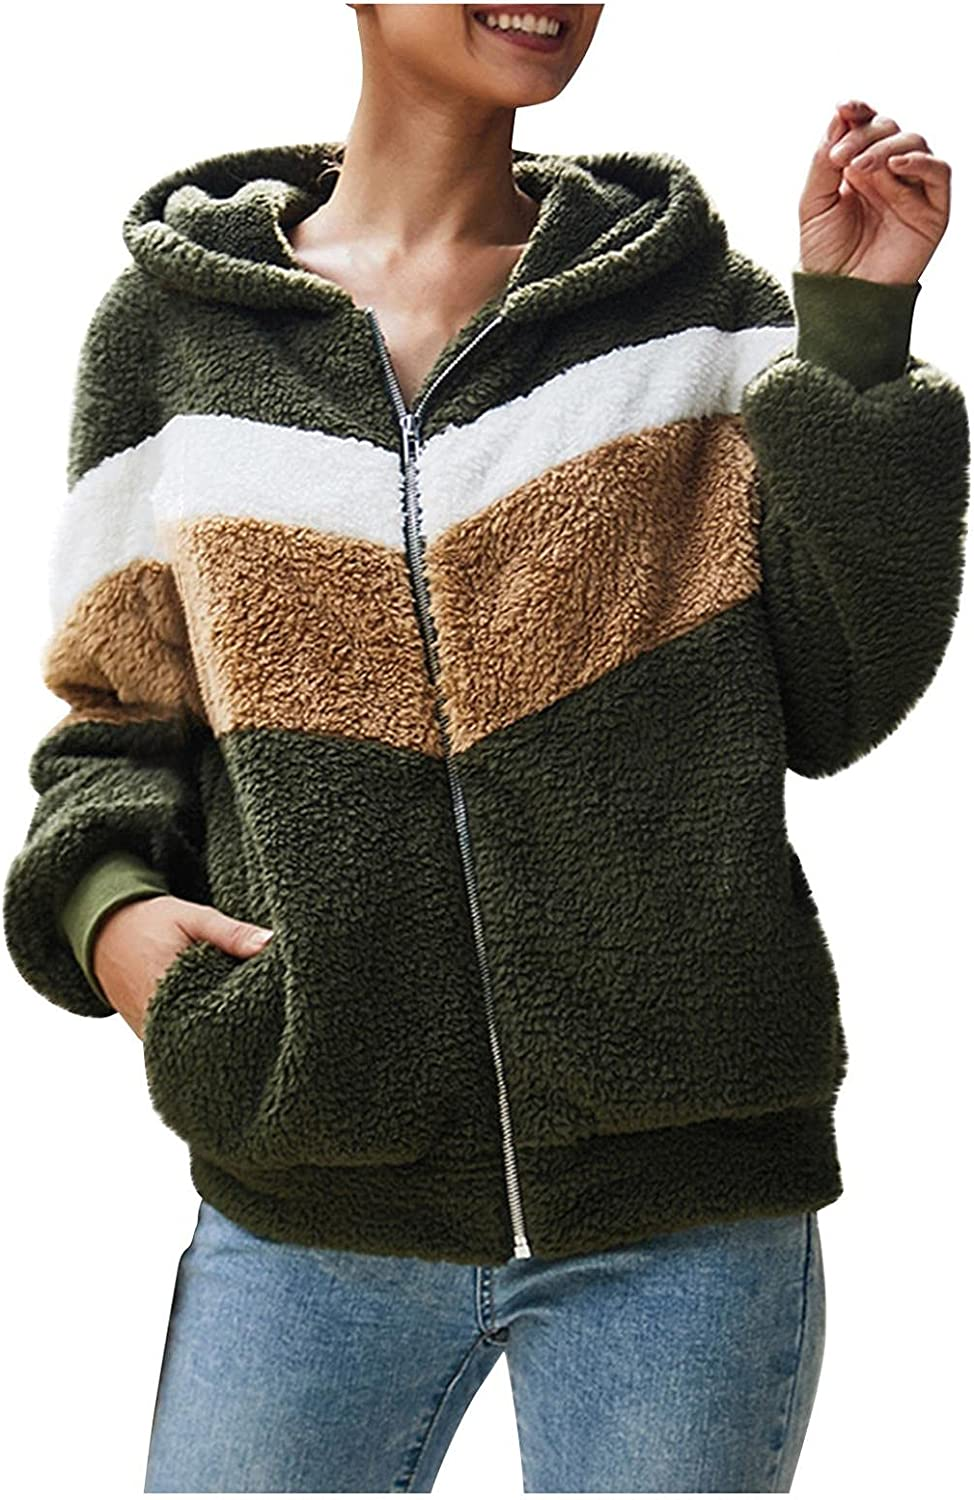 Women's Color Block Cardigan Jacket with Pockets Warm Plush Fuzzy Faux Shearling Winter Coat Zip Up Bomber Outwear